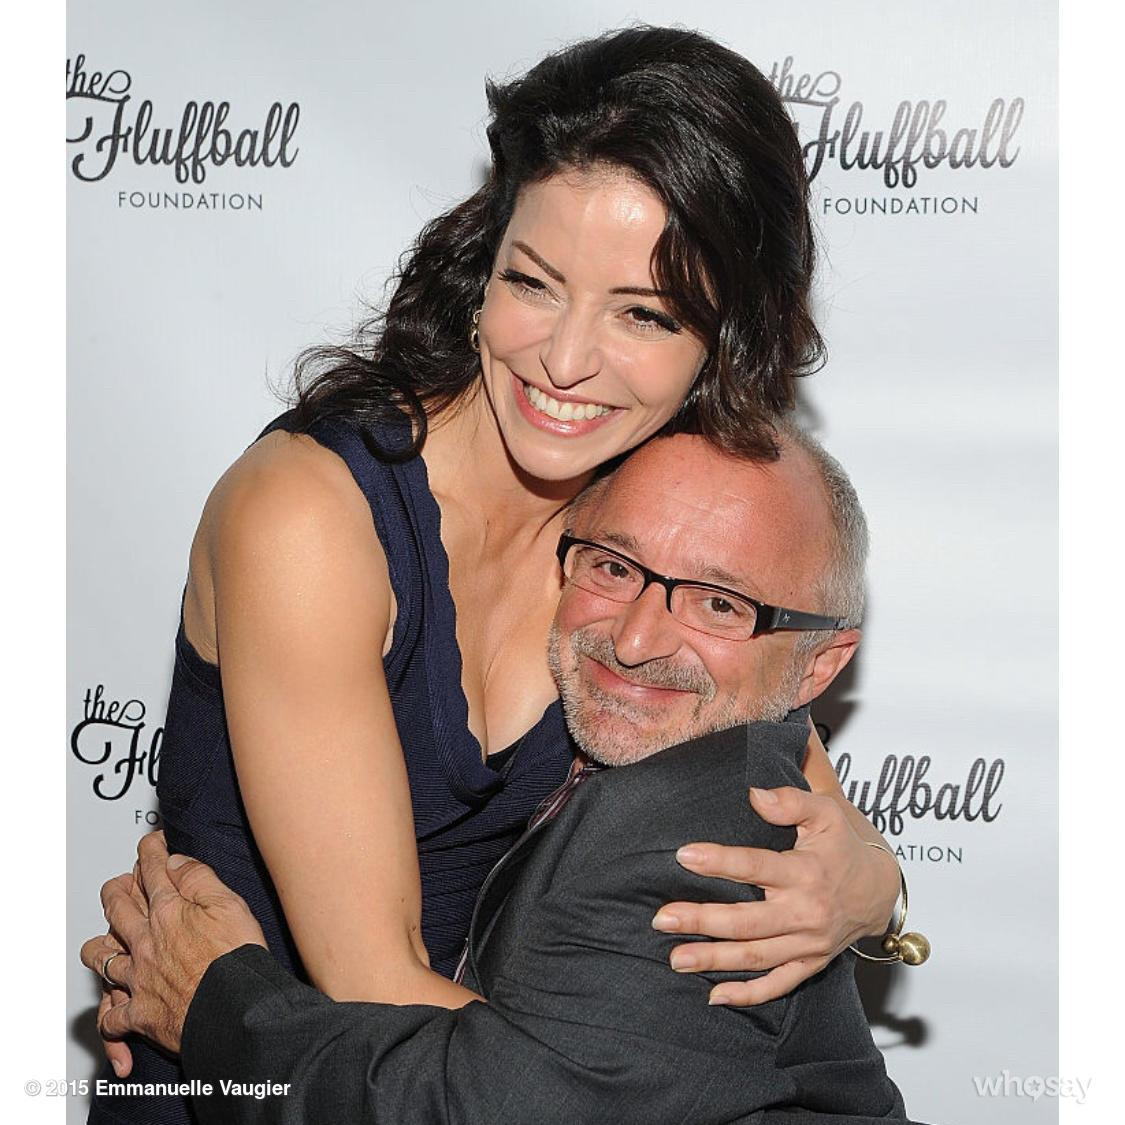 Emmanuelle Vaugier (@evaugier): A little @TheFluffball love with @Rick_Howland @lostgirlseries #Charity http://t.co/FpNm3SDpAP